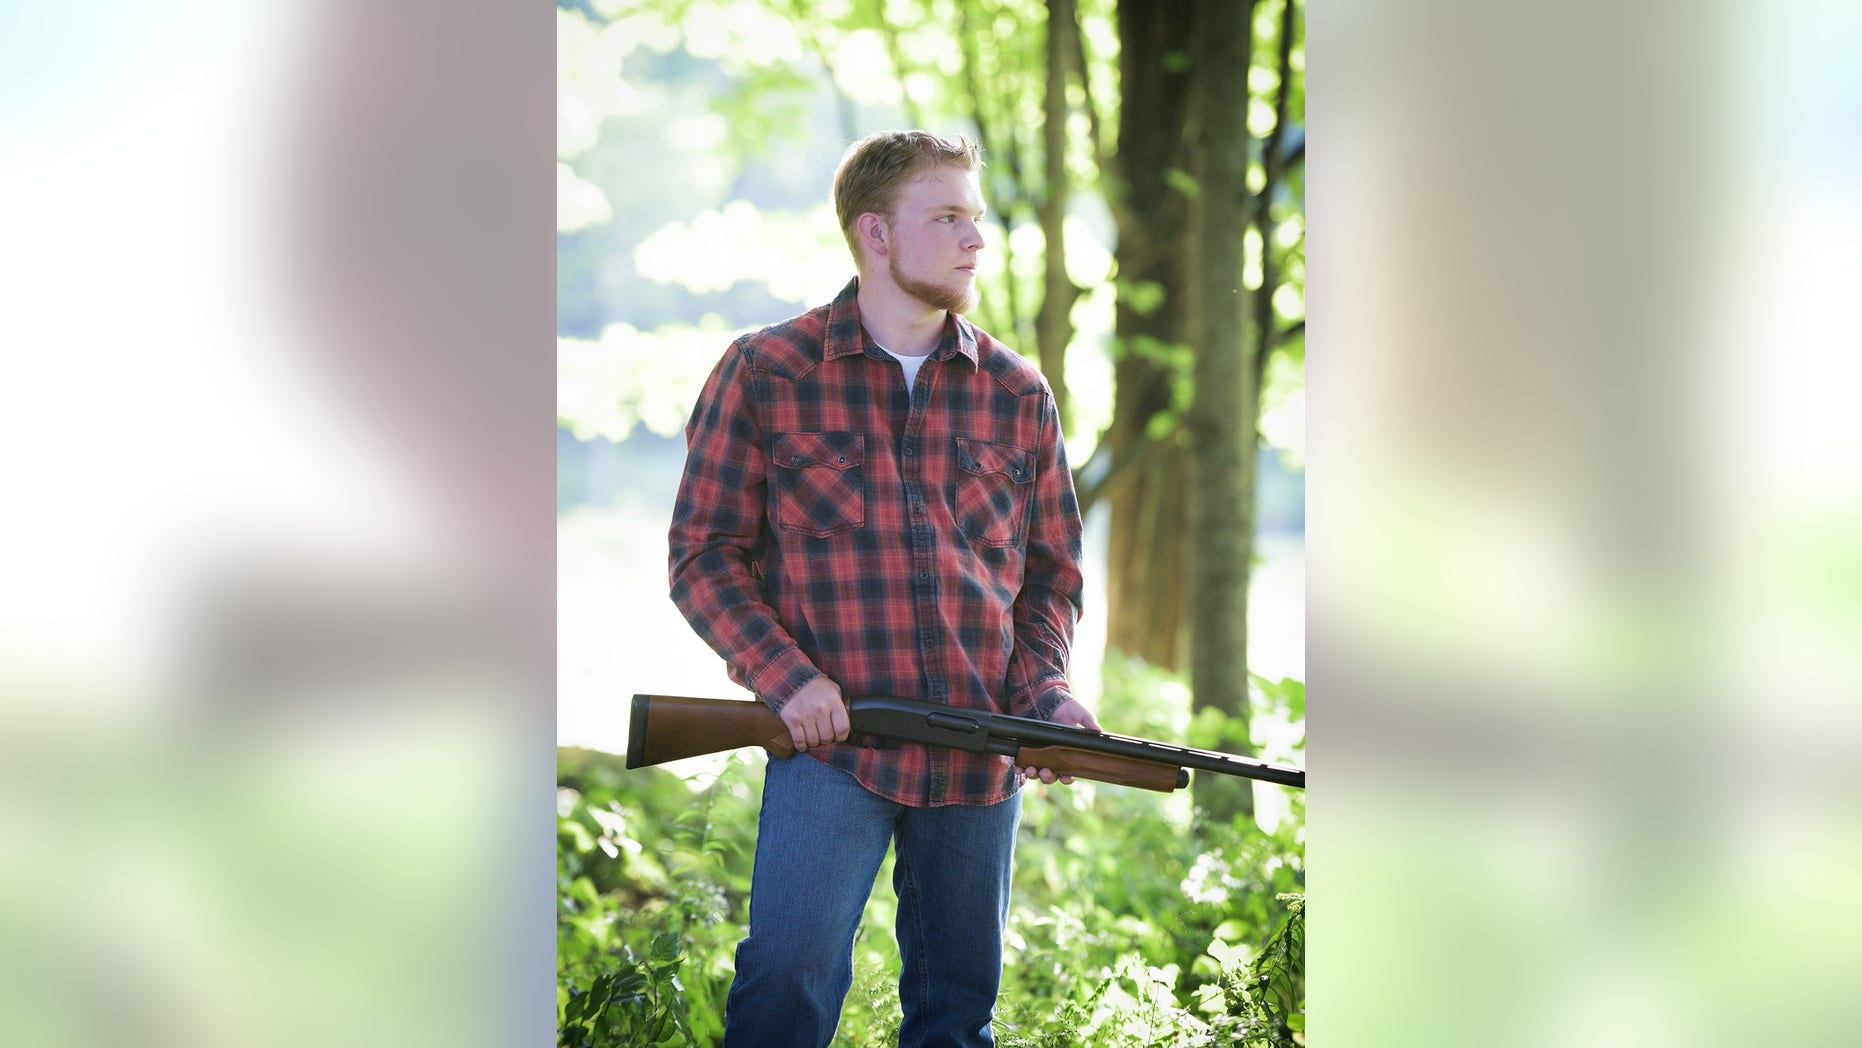 Wane Gelinas, an avid hunter, wanted to use this photo for his senior yearbook. His Maine school wouldn't let him.